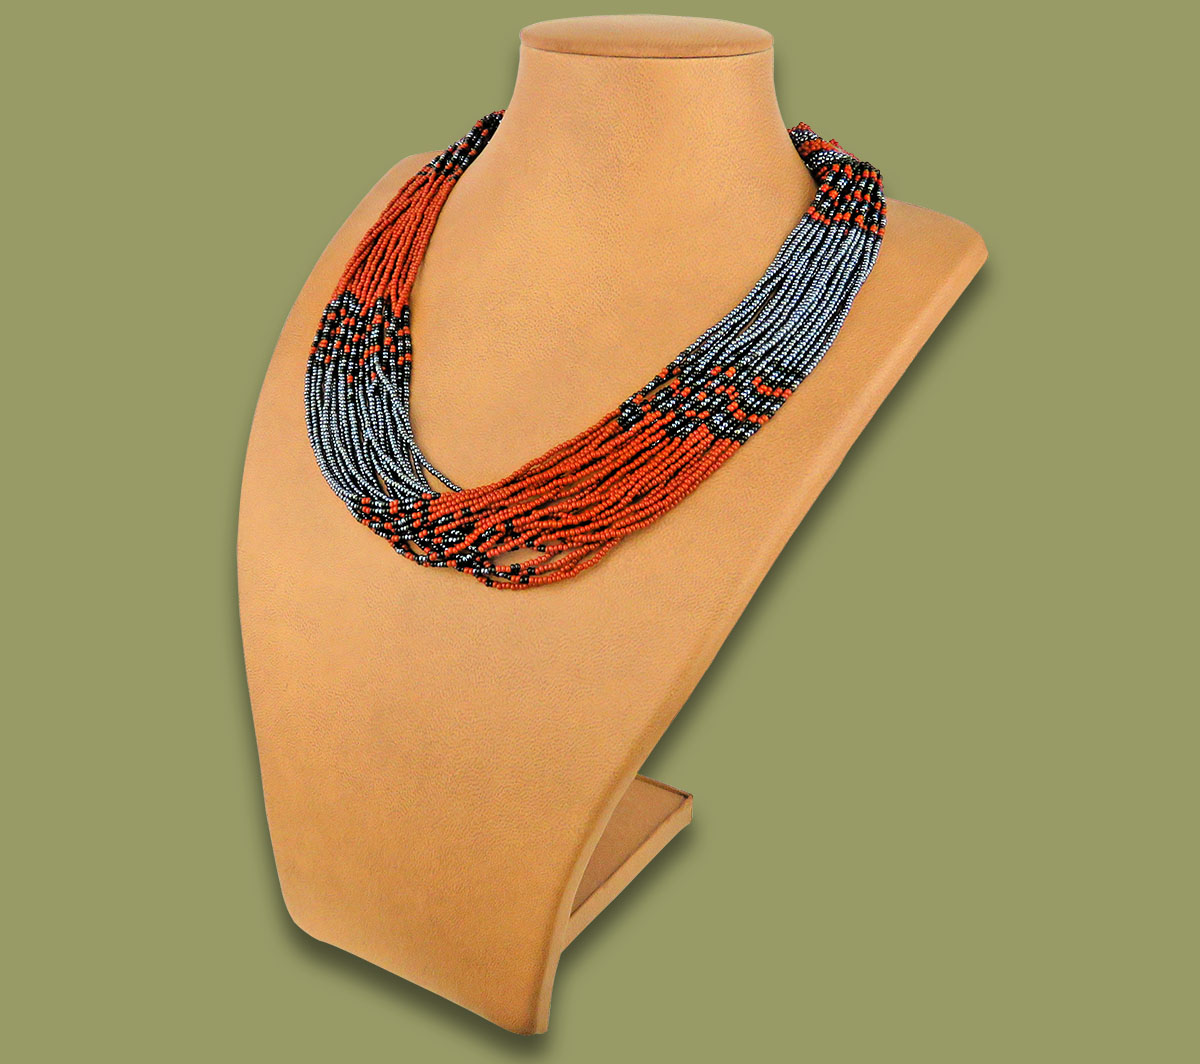 African Beaded Necklace Zama Brown Black Metallic